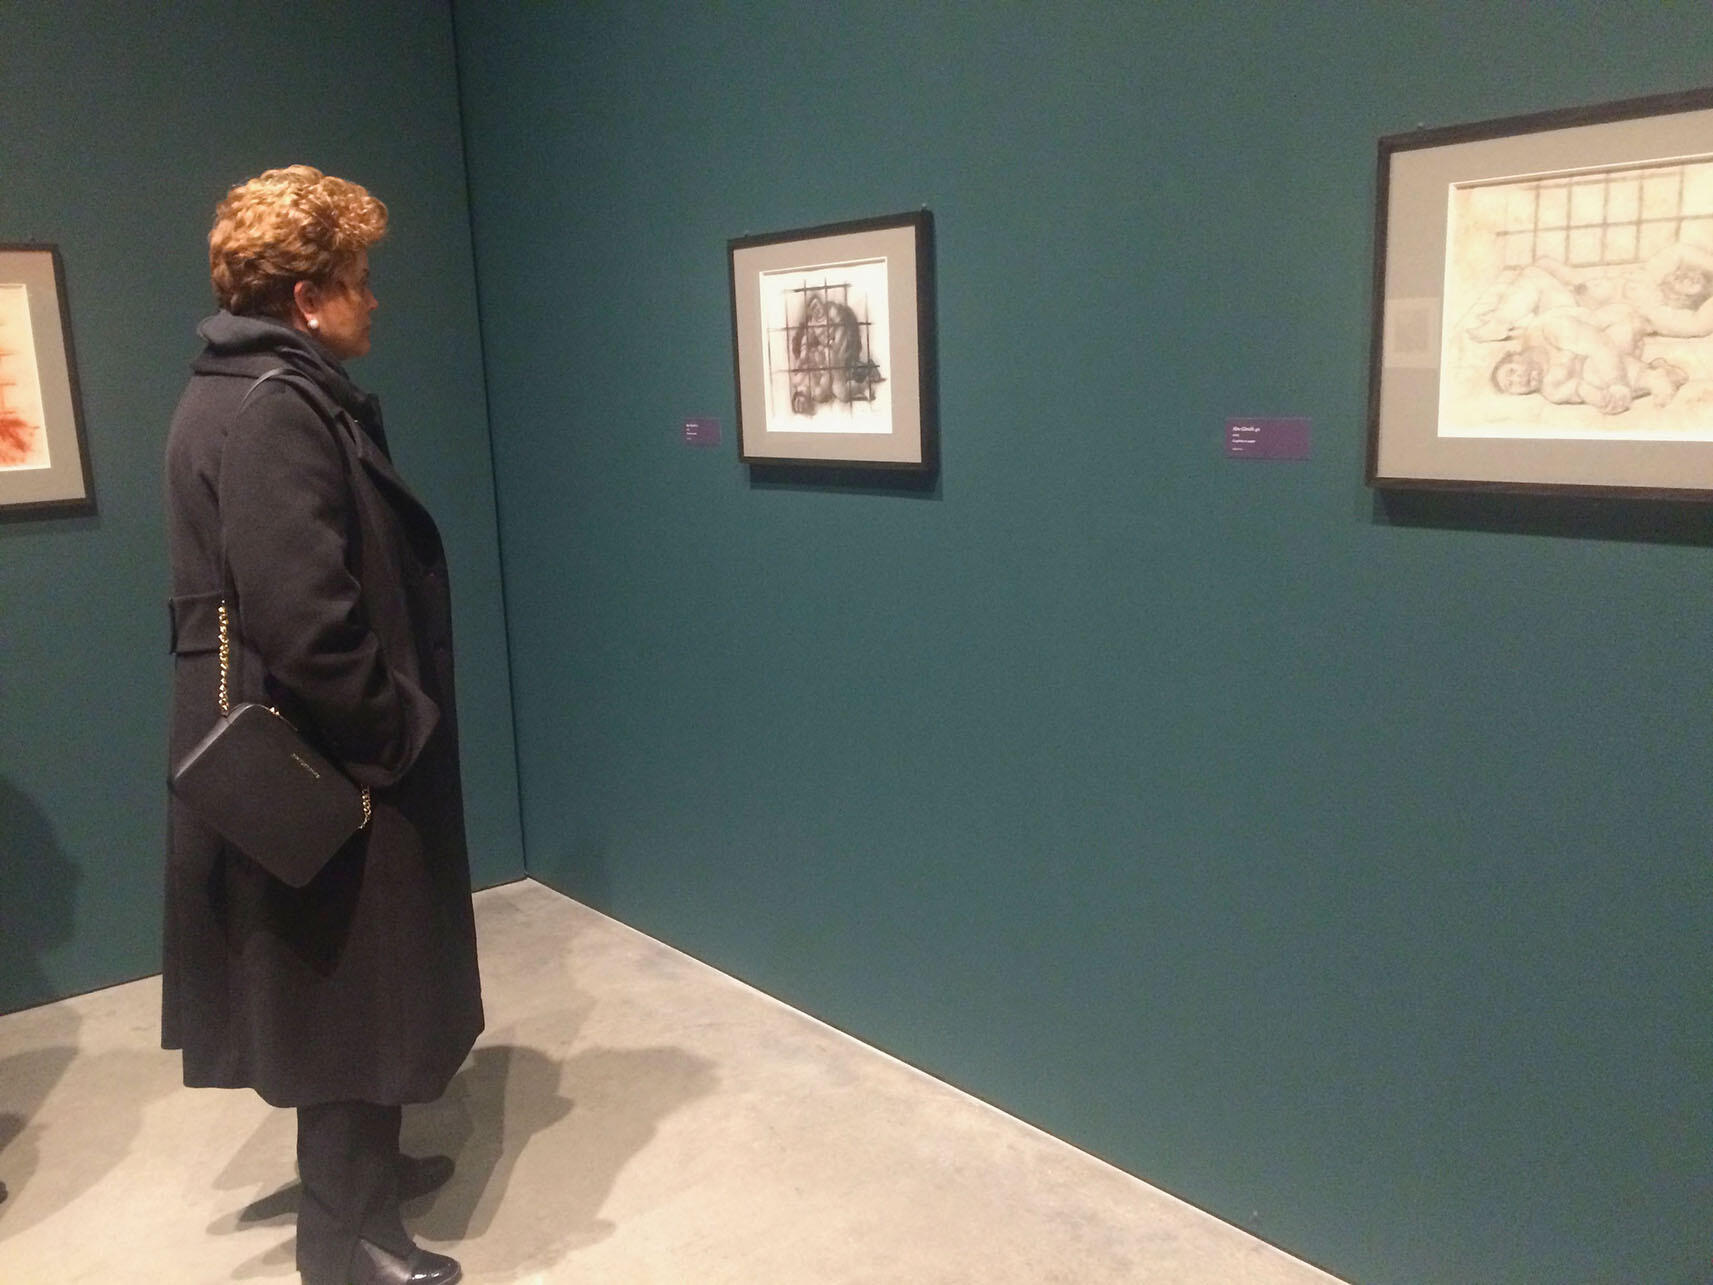 """Dilma Rousseff gazes at Botero's """"Abu Ghraib 17"""" in the Berkeley Art Museum. (Photo by Isabel Nogueira.)"""